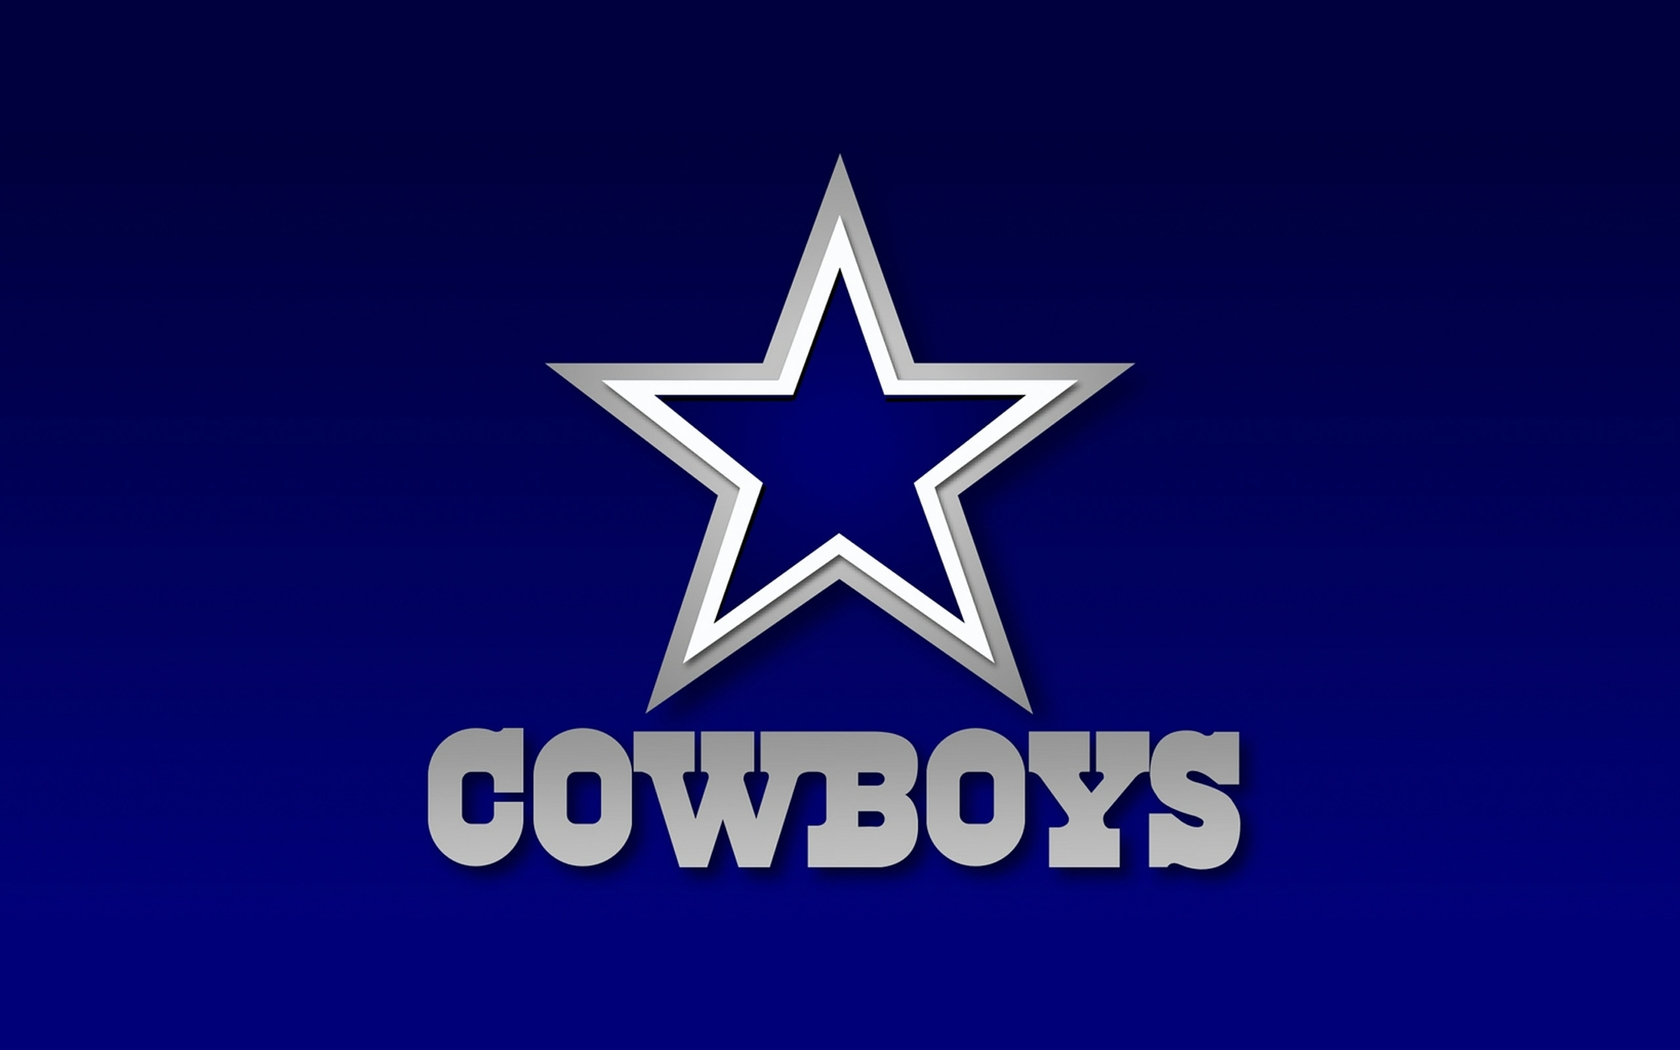 Dallas Cowboys background image Dallas Cowboys wallpapers 1680x1050